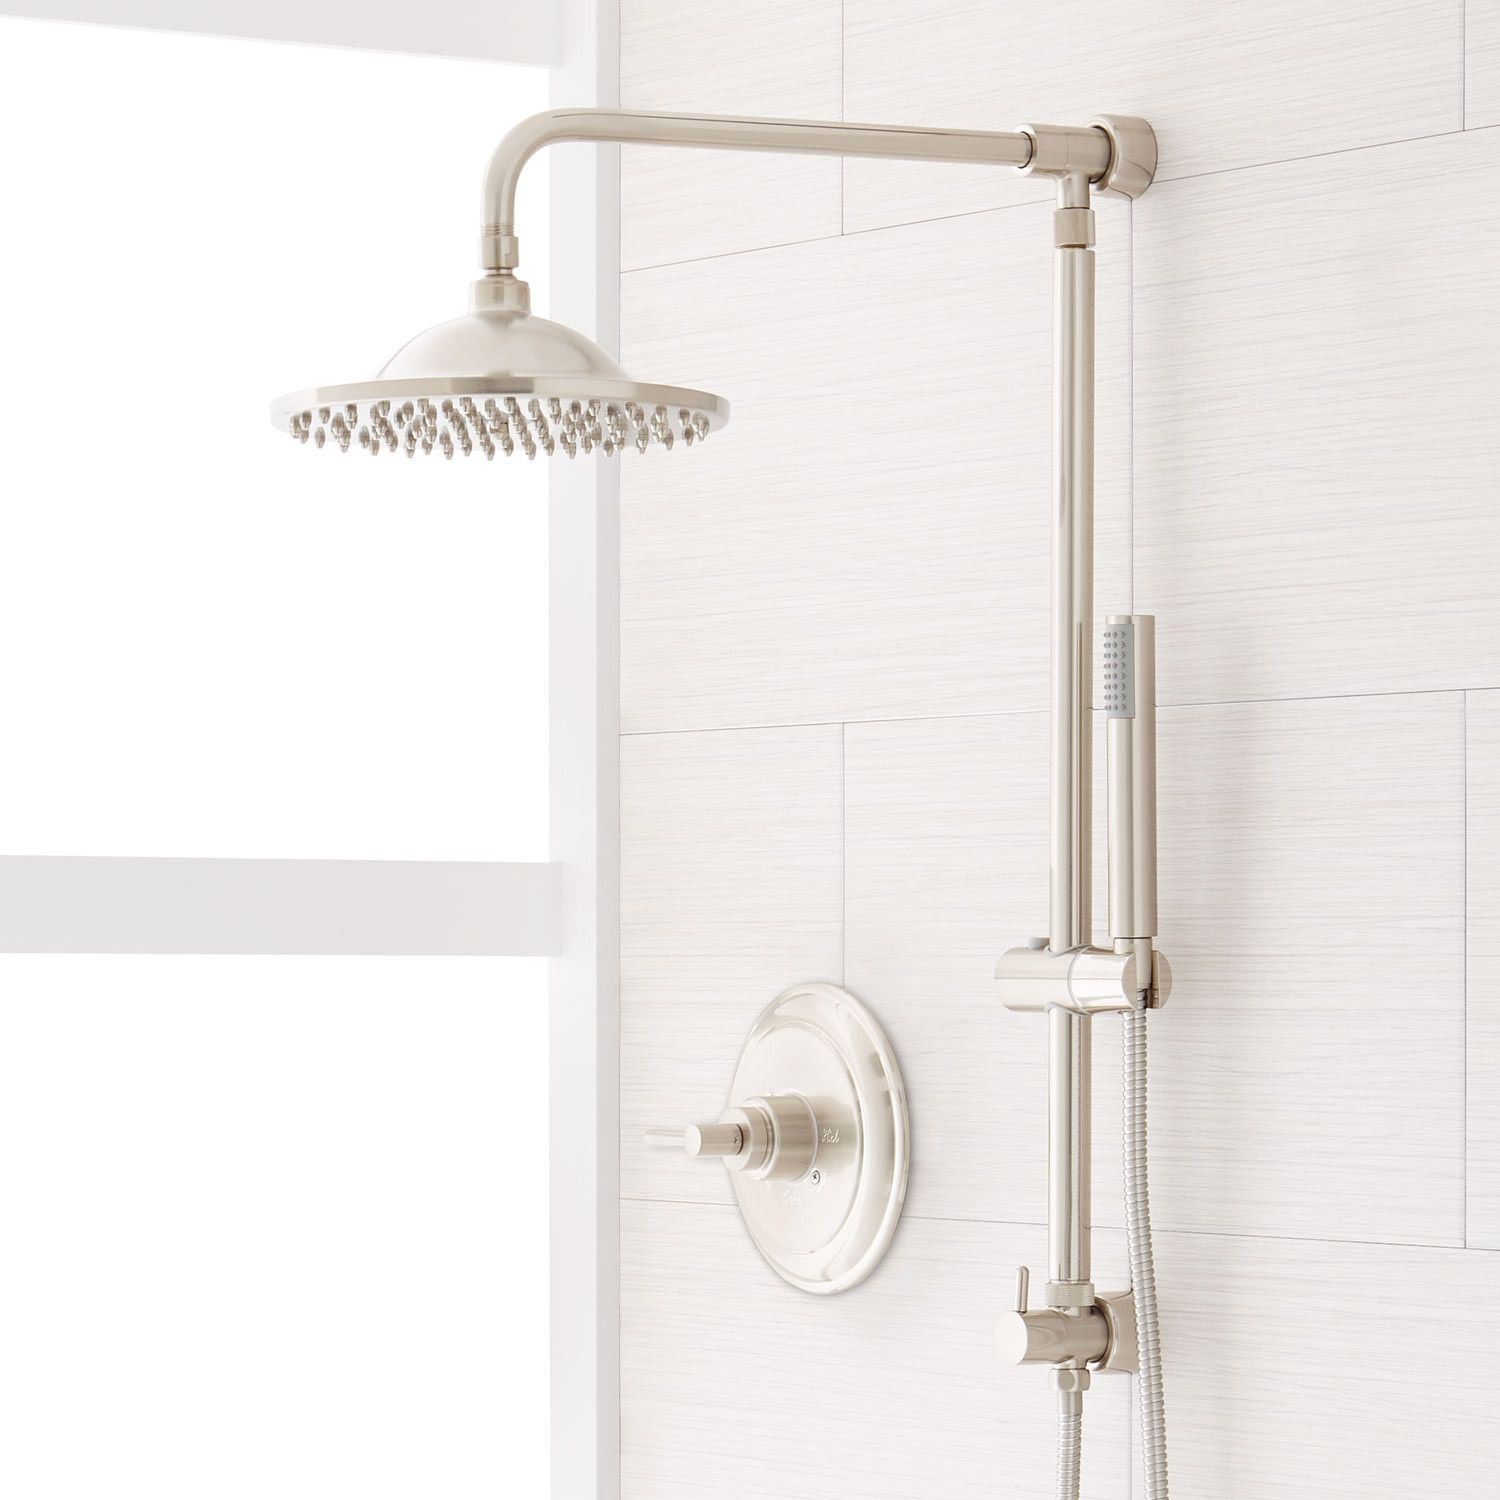 8 Bostonian Nozzle Shower System In Hand Shower In Mixing Valve